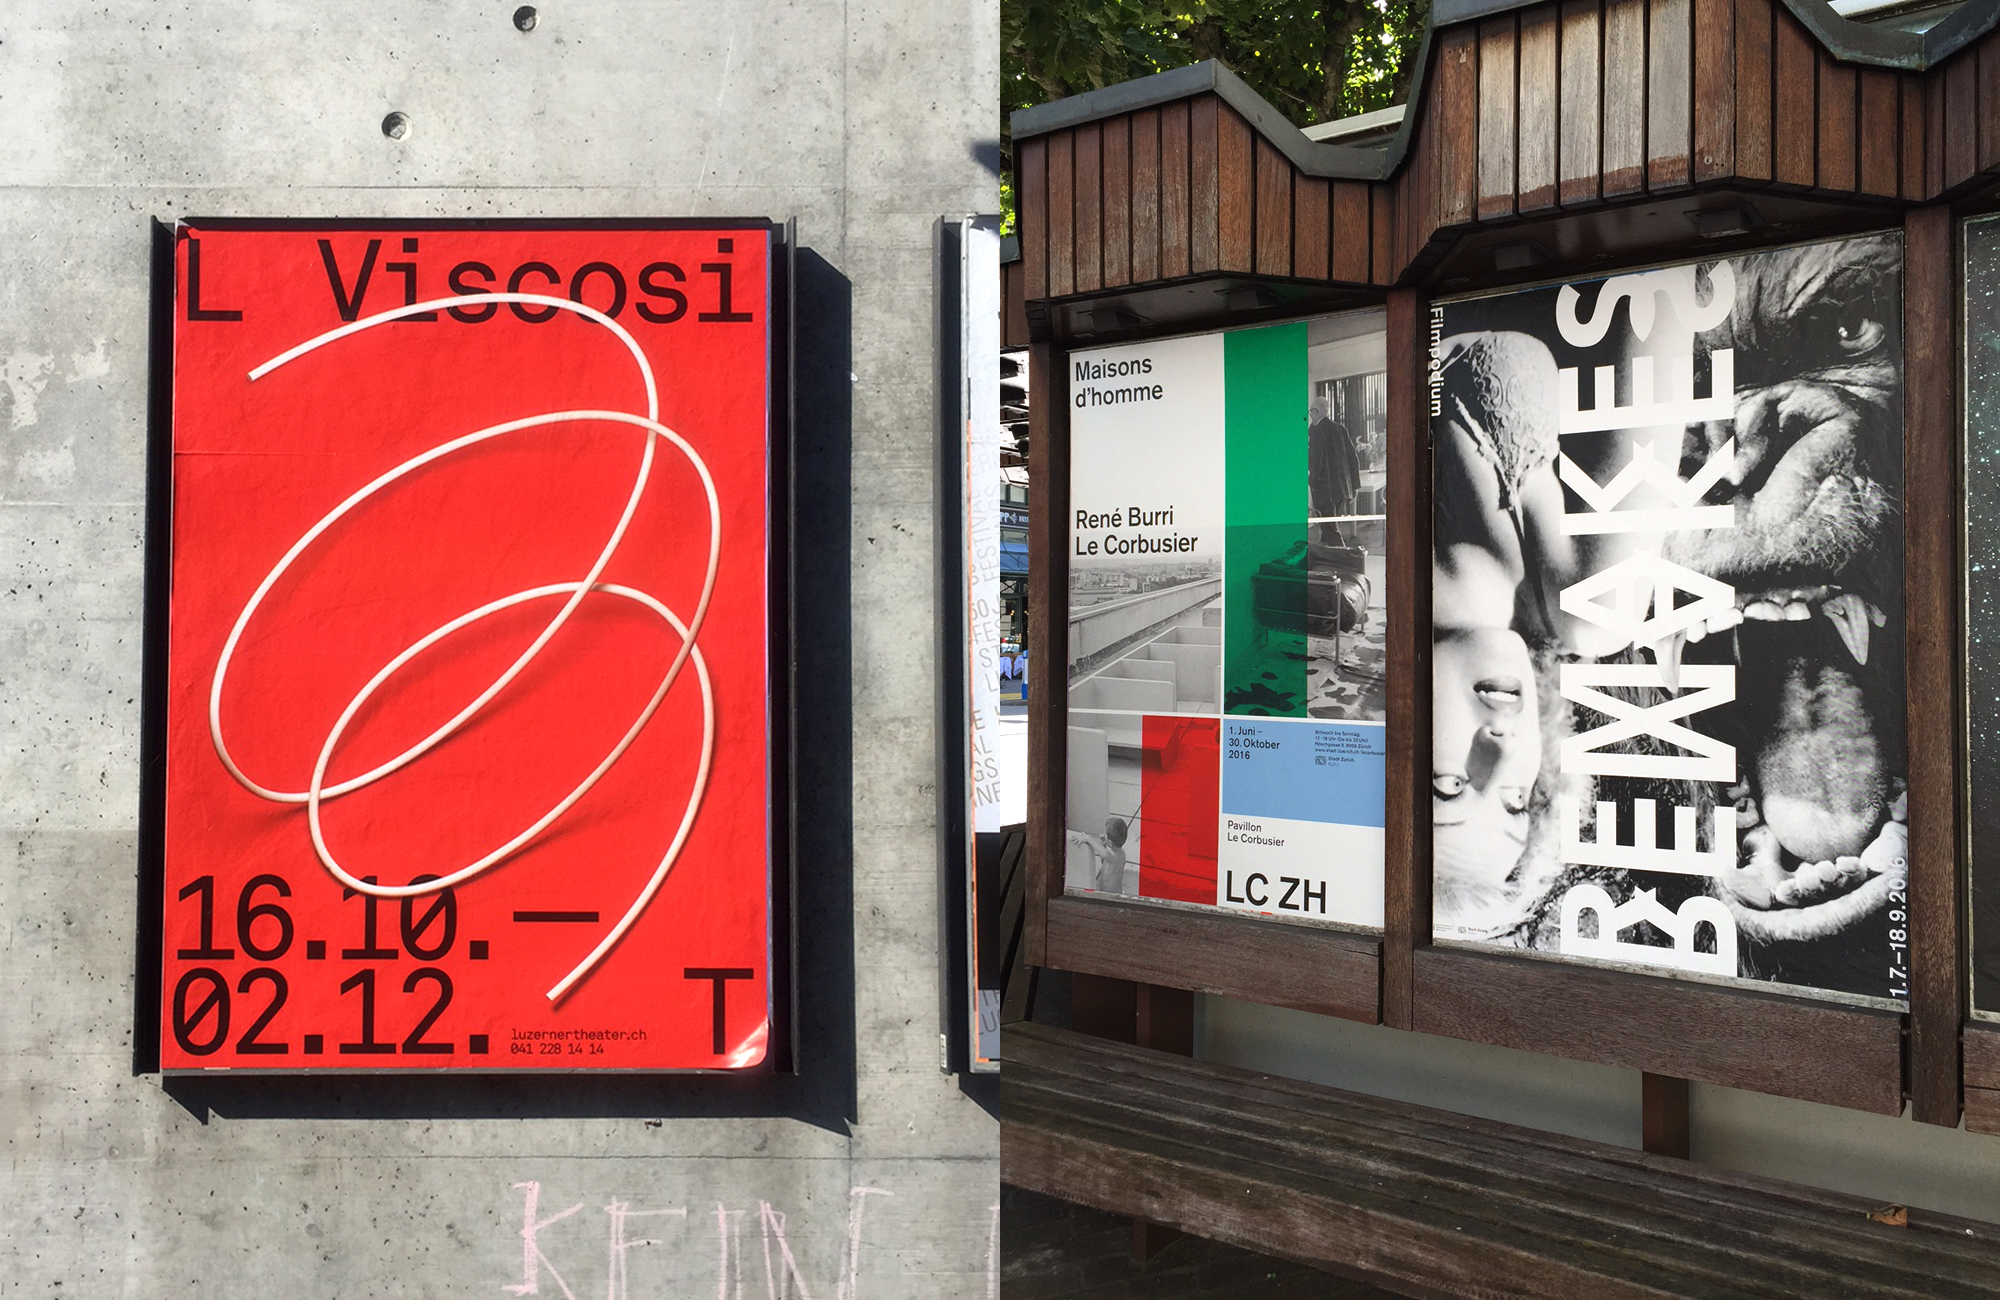 Design by Studio Feixen (left) and posters by Büro 146 and zhdk students (right). Images © Dennis Moya